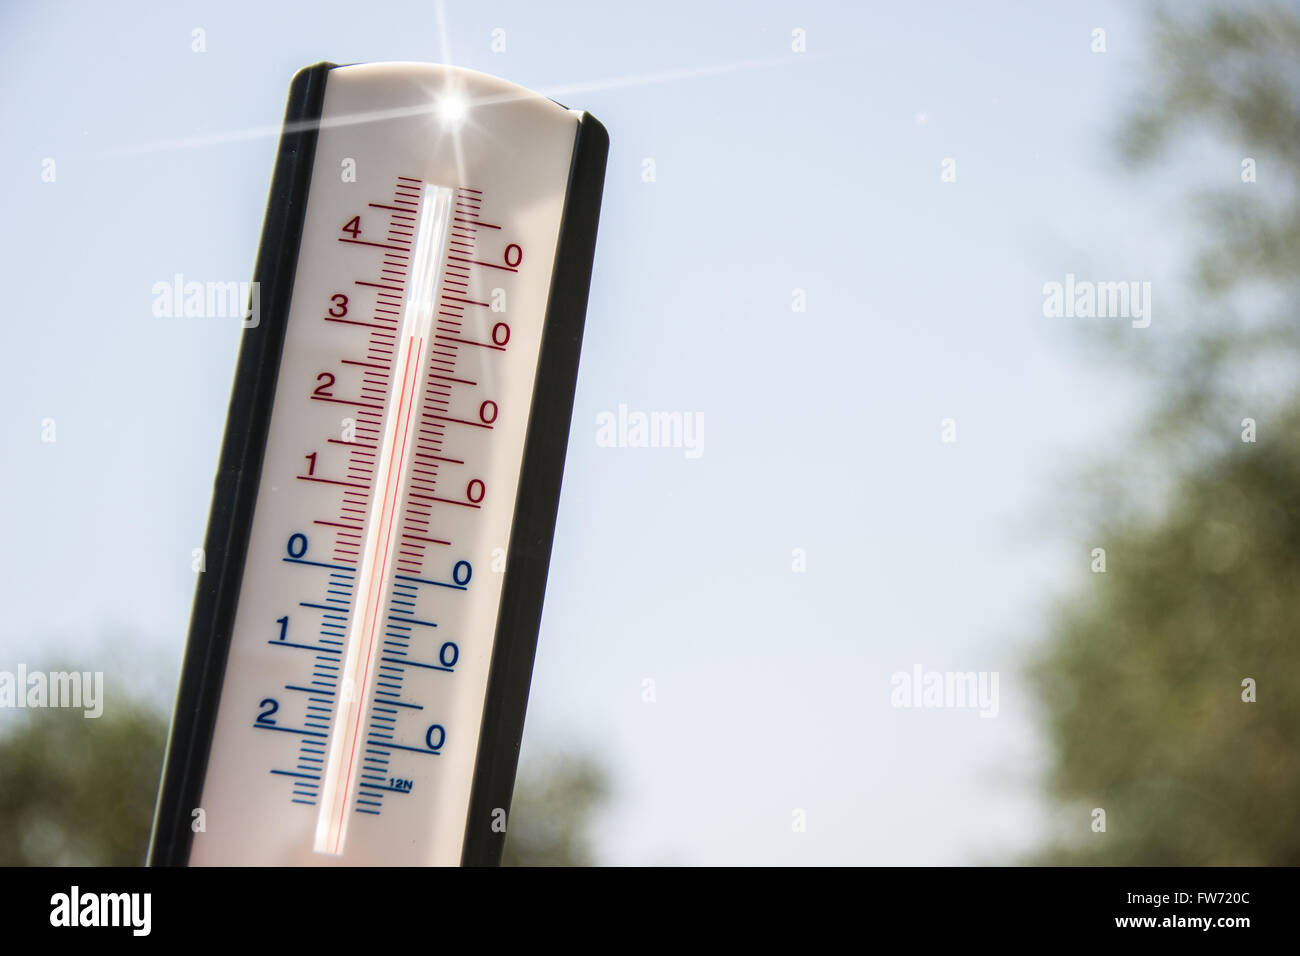 thermometer pointing to the sky to symbolize the heat of summer - Stock Image